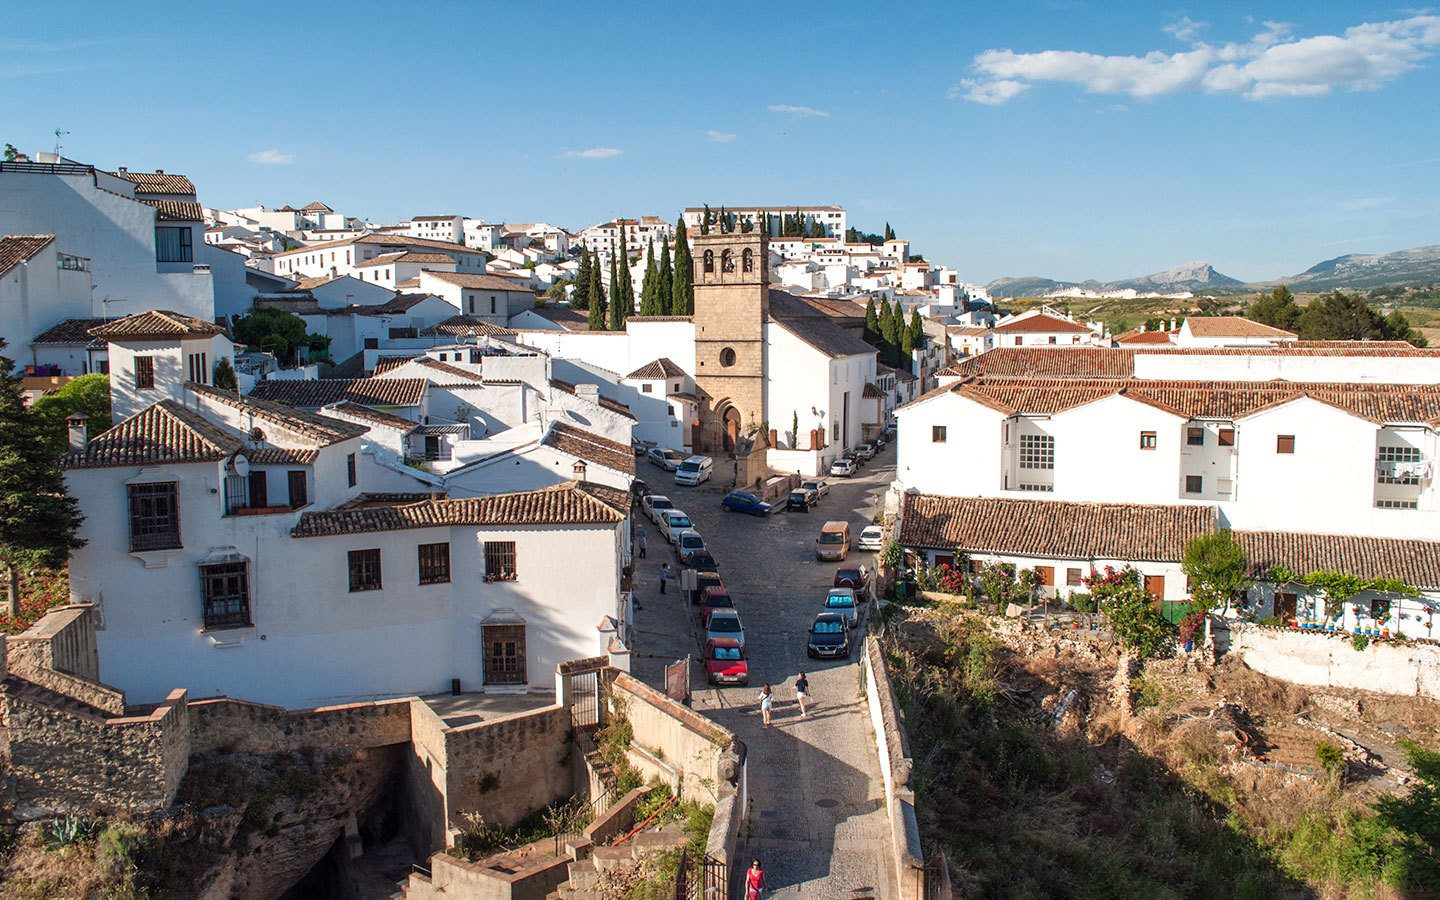 Ronda's old town